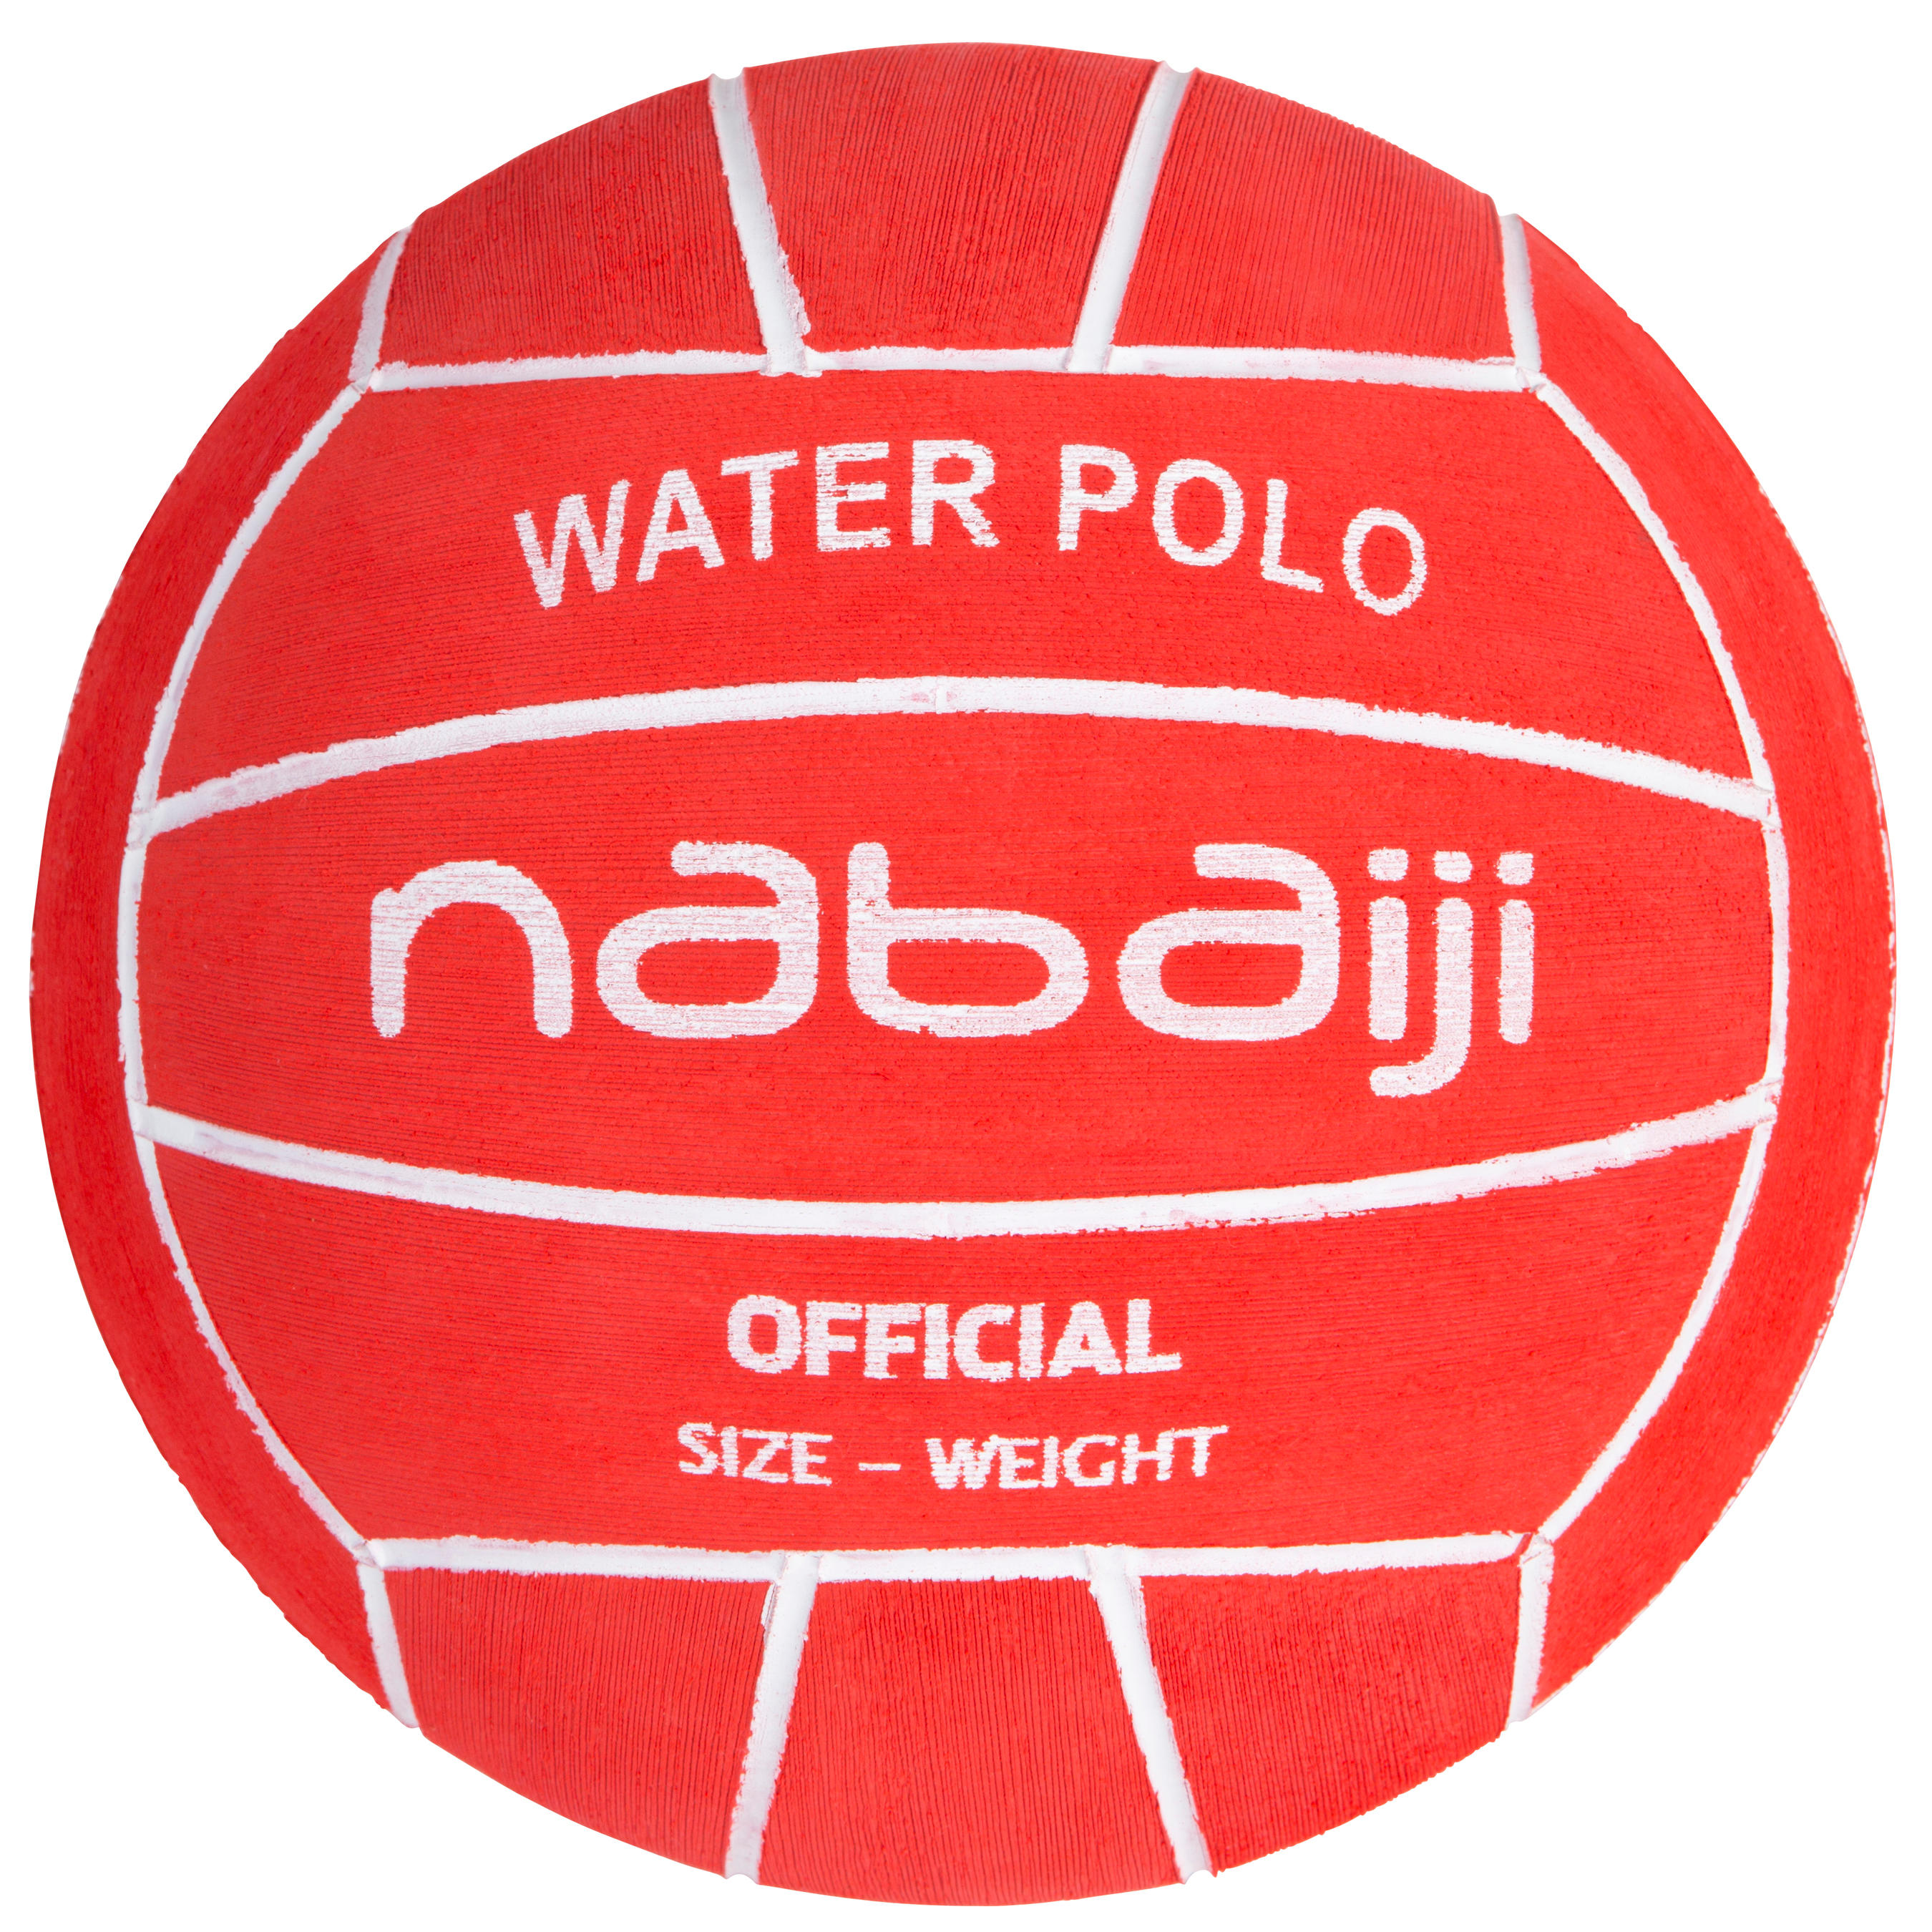 Men's official water polo ball - red